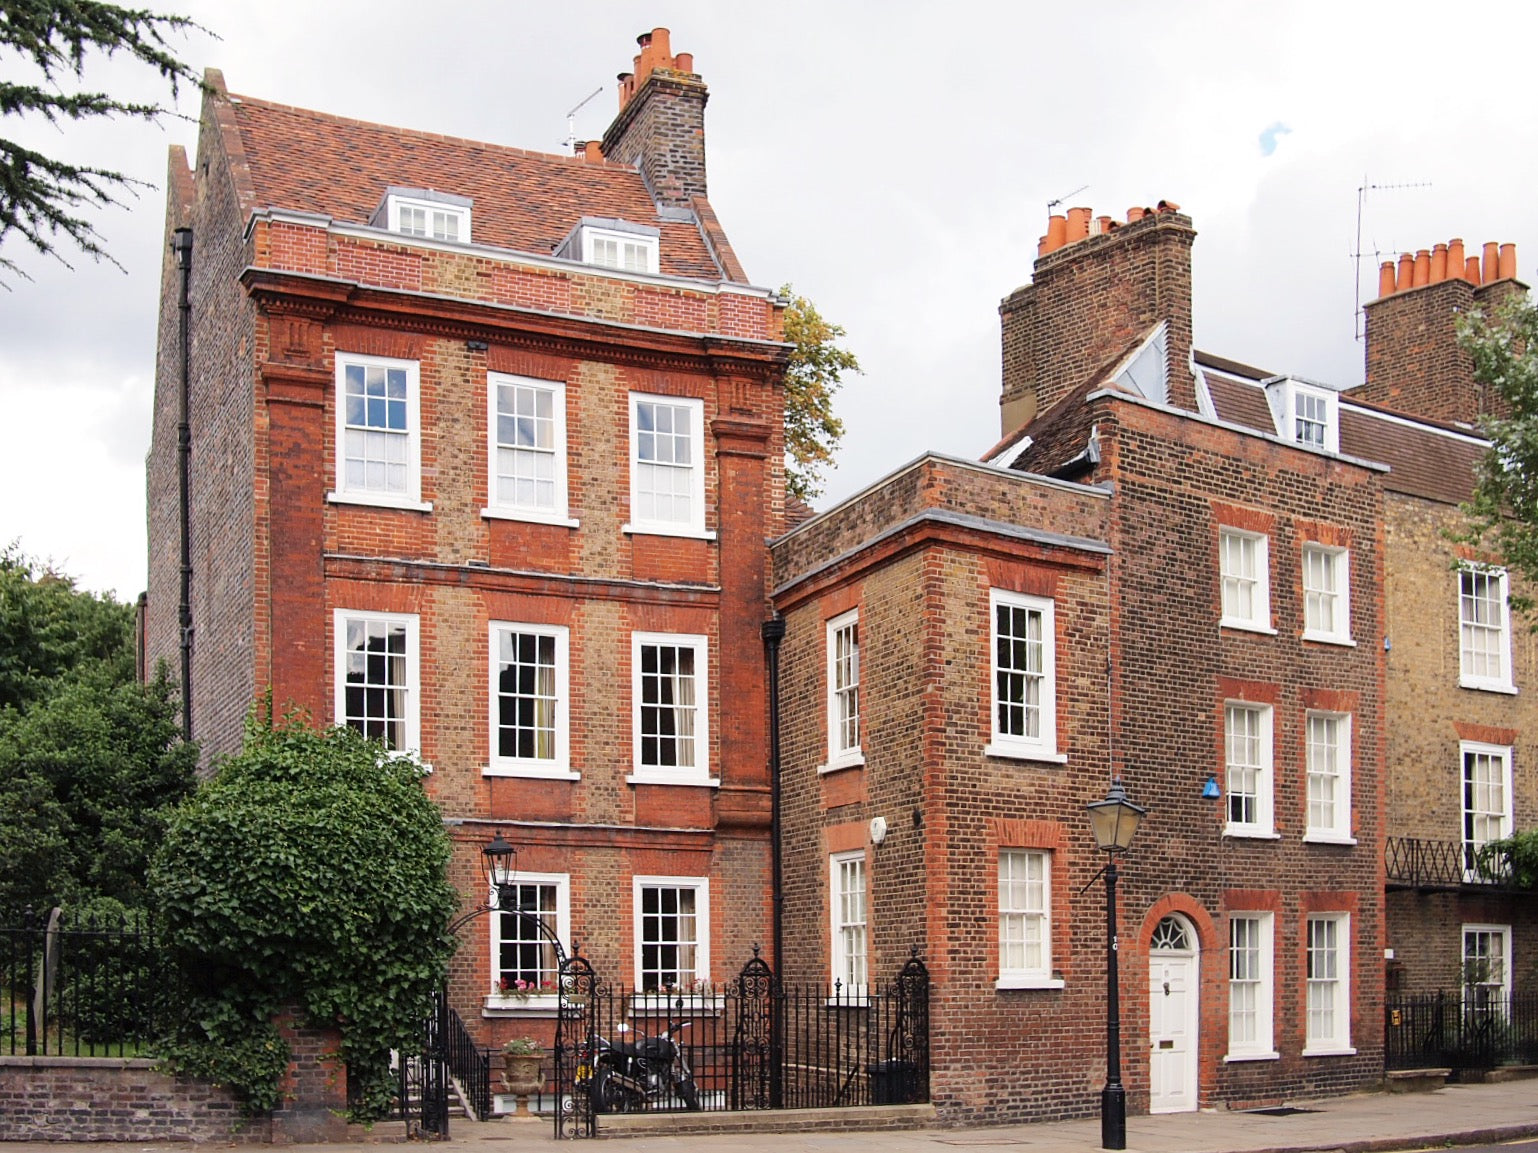 Elegant Georgian townhouses in the heart of Hampstead, London